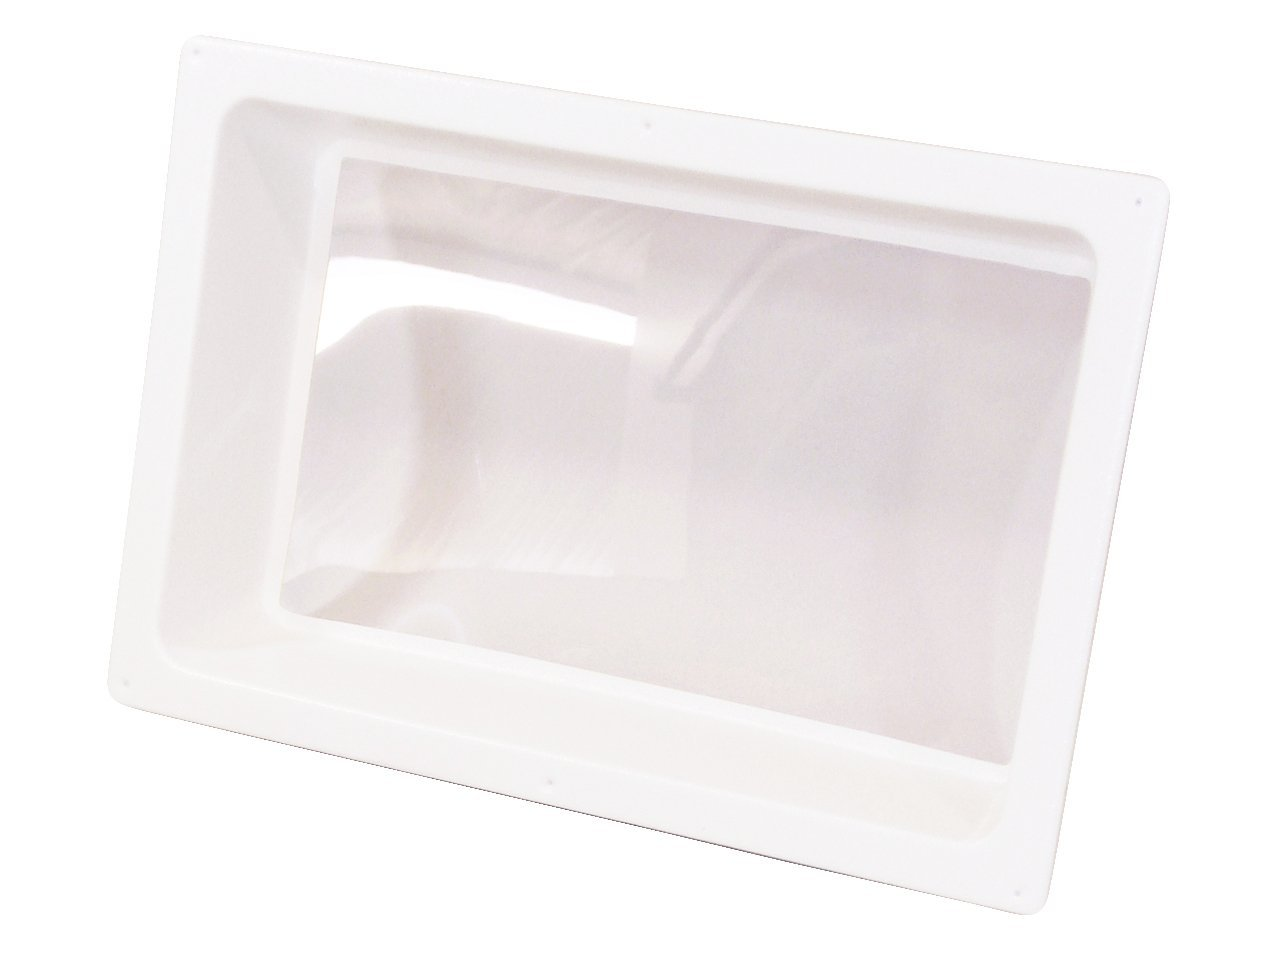 ICON 01981 Single Pane Exterior Skylight Inner Dome SL1422-Clear, Standard by ICON